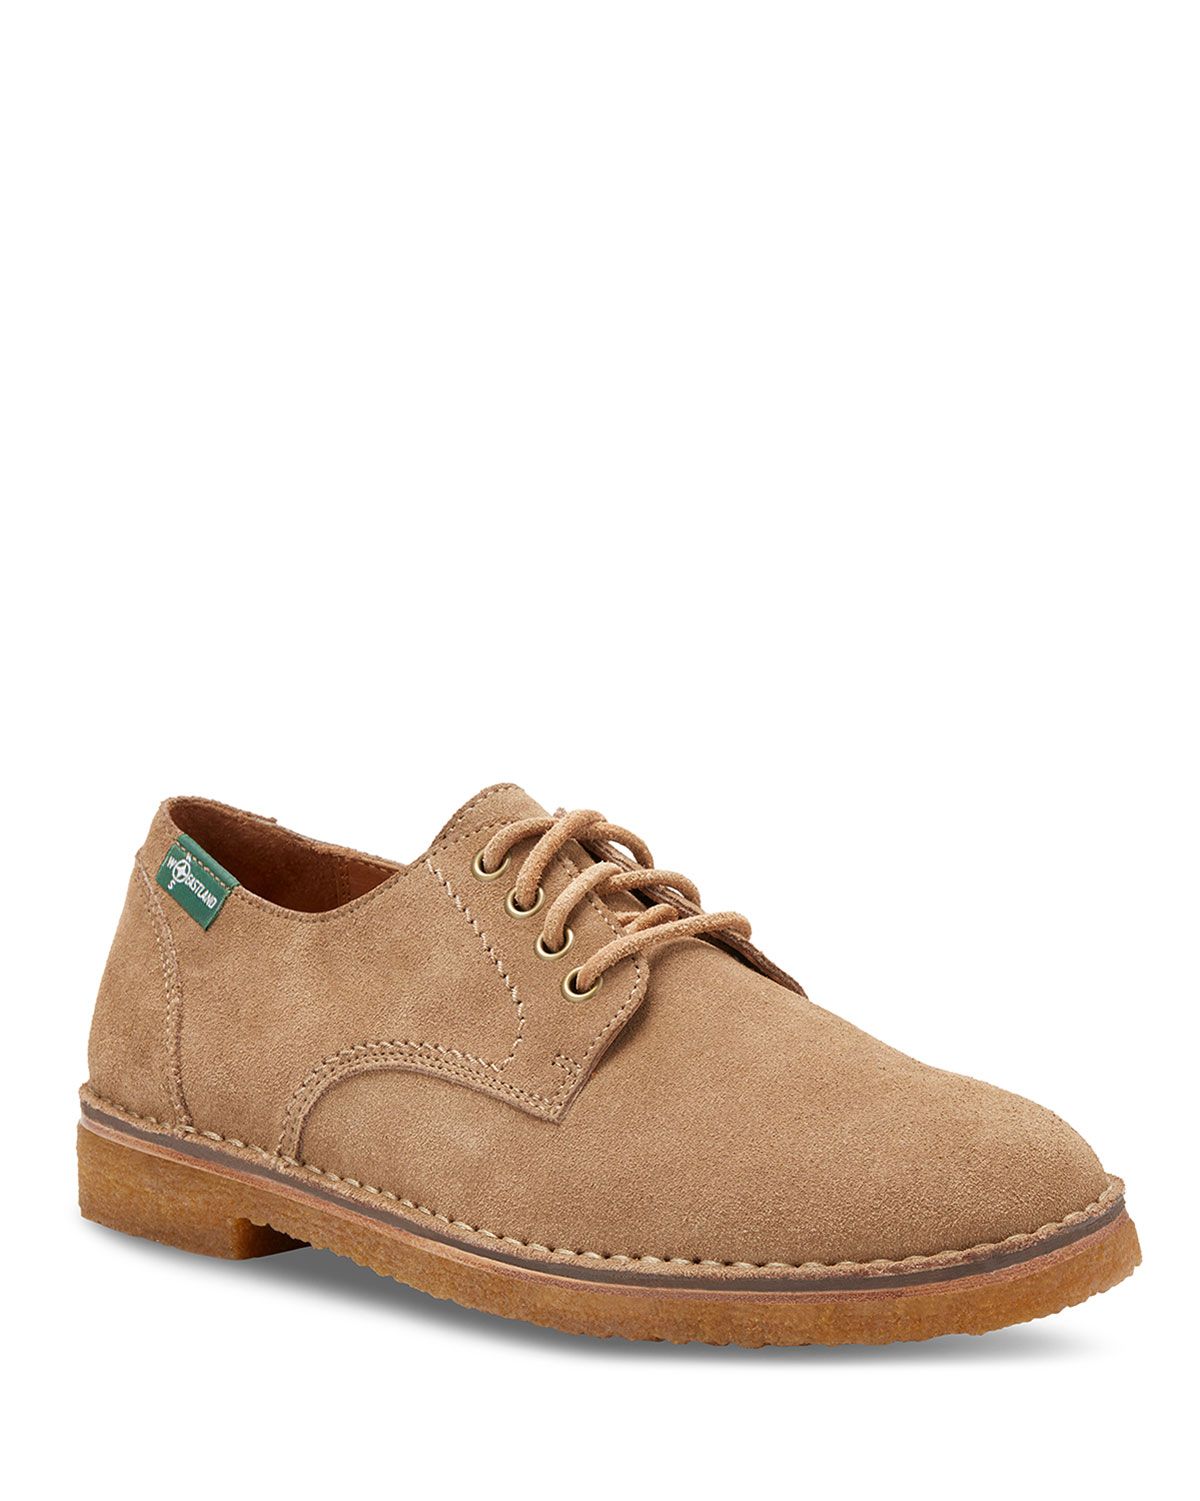 EASTLAND Men'S Morris 1955 Suede Lace-Up Shoes in Light Brown